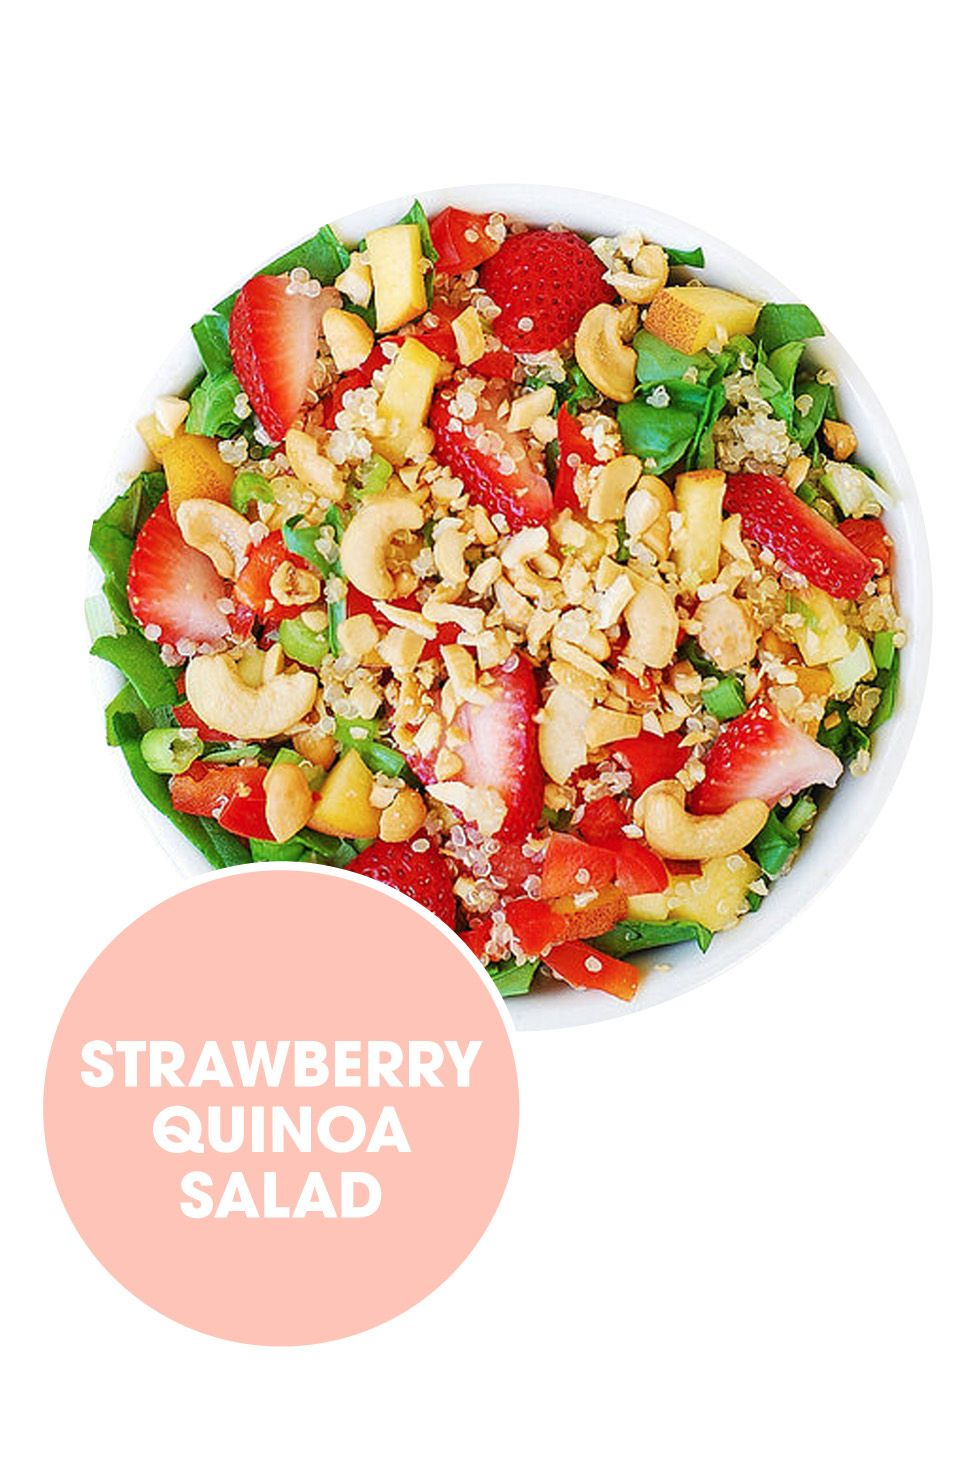 "<p>Instead of croutons, use quinoa and cashews to add crunch.</p><p>Get the recipe from <a href=""http://juliasalbum.com/2014/07/strawberry-quinoa-spinach-cashew-salad/"">Julia's Album</a>.</p>"